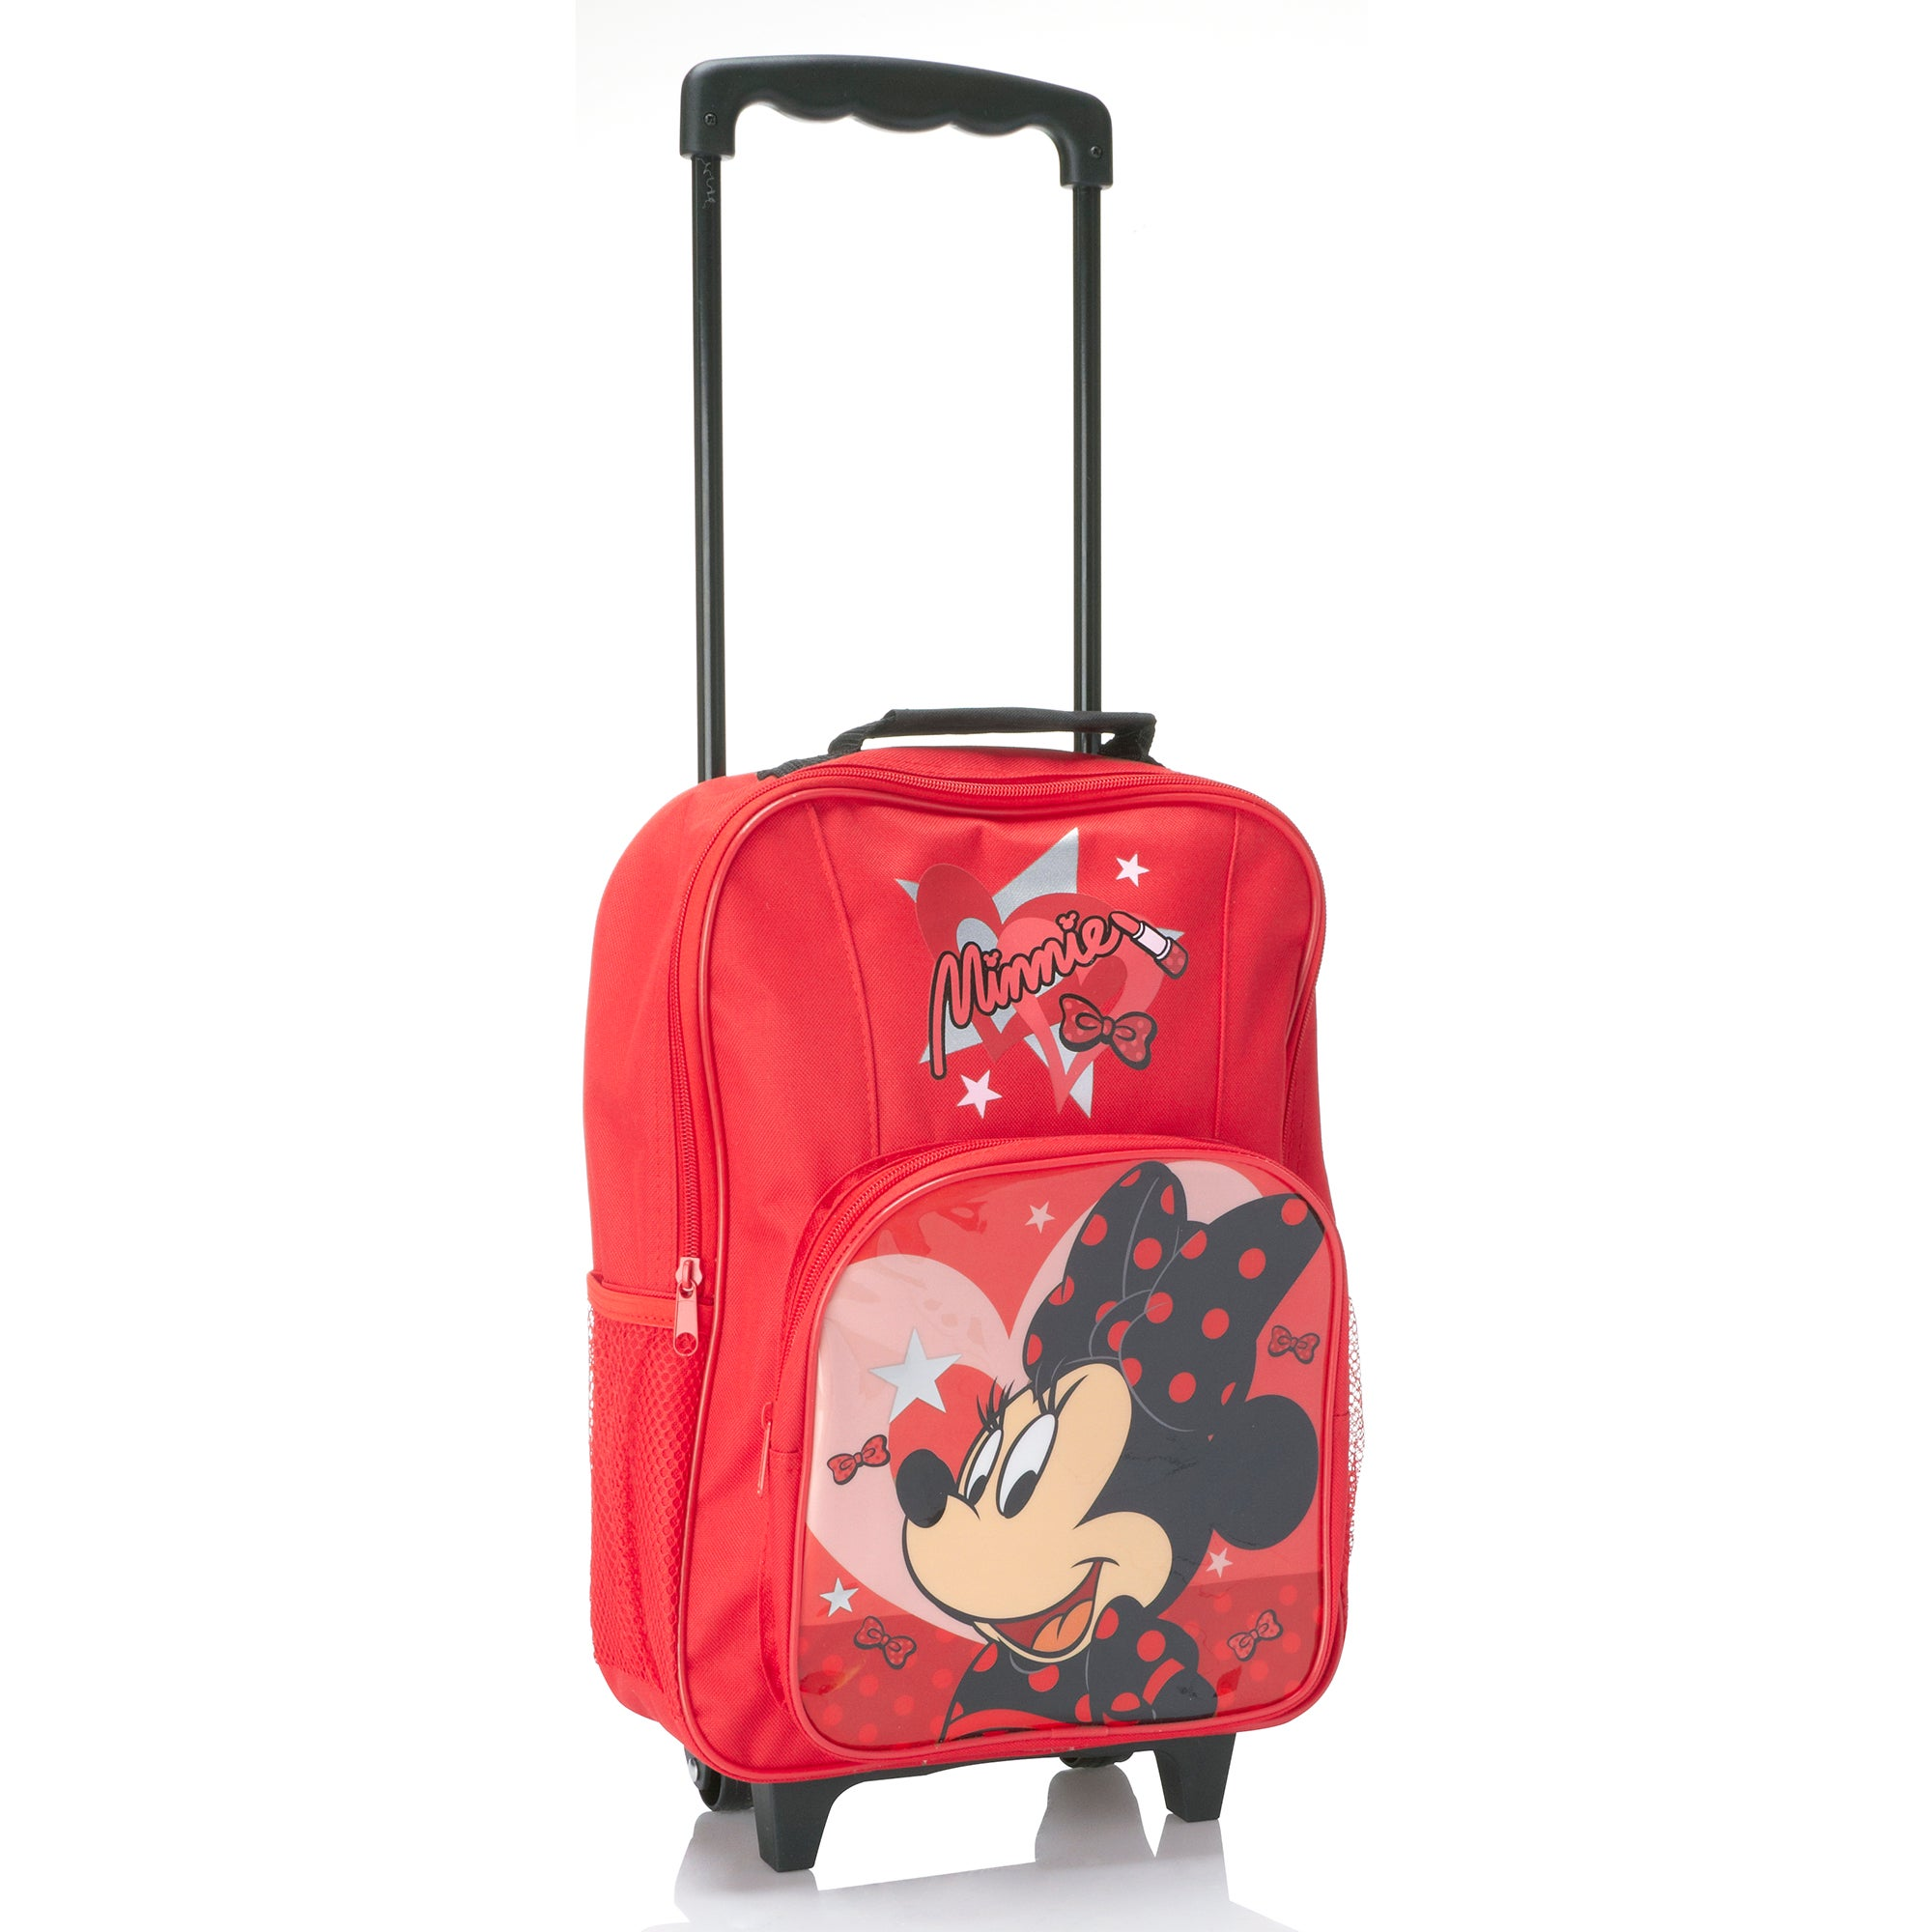 Kids Disney Minnie Mouse Wheeled Bag